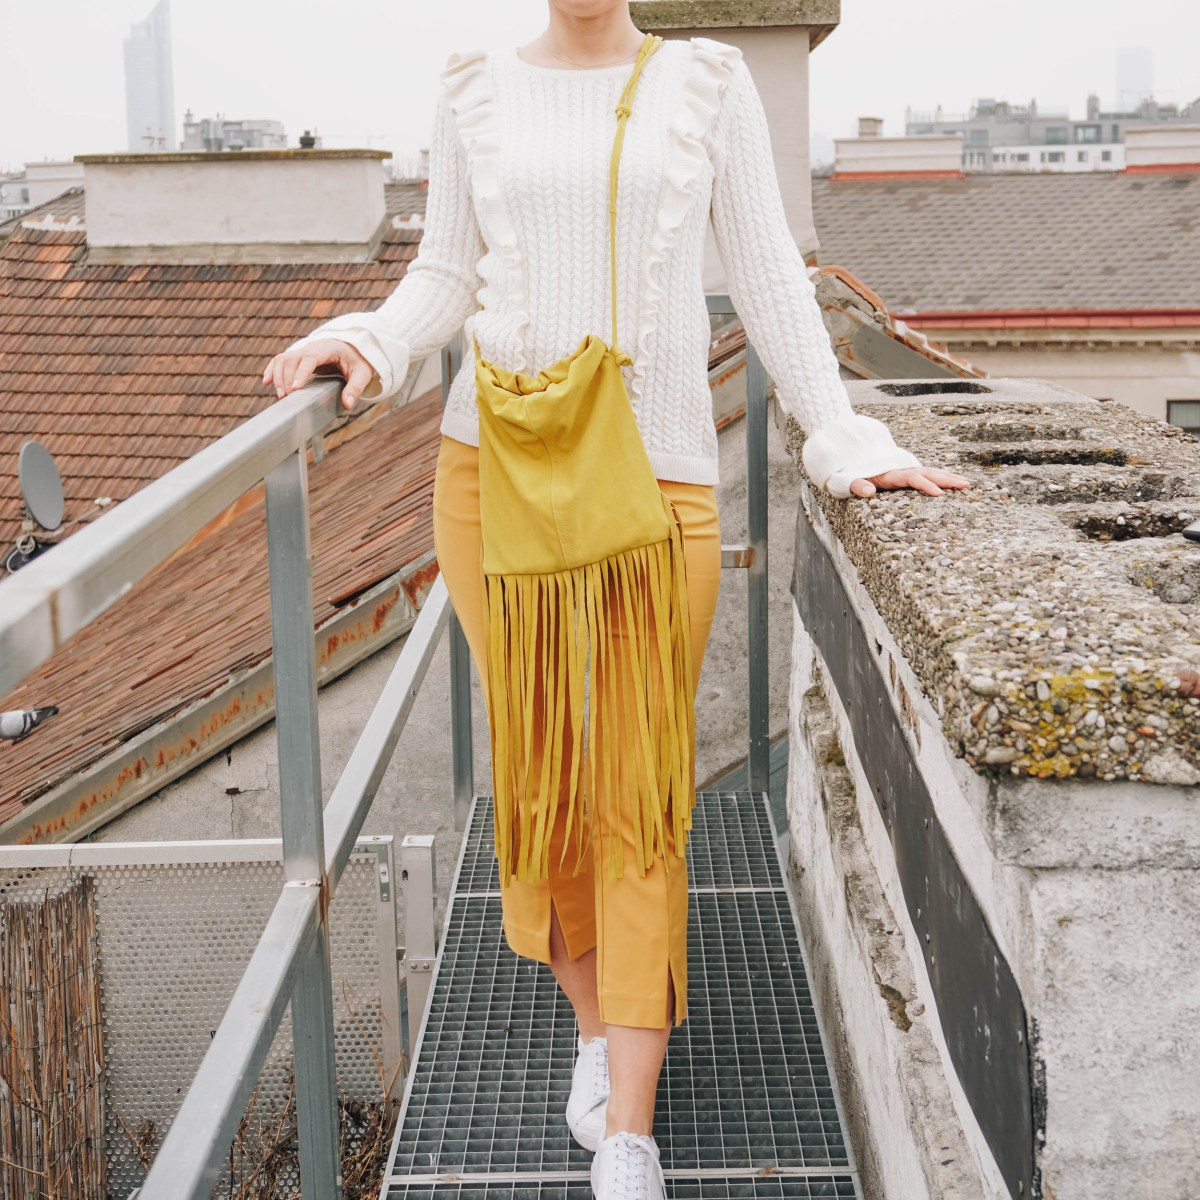 https://i0.wp.com/yellowgirl.at/wp-content/uploads/2021/03/yellowgirl-DIY-Handtasche-look-a-like-The-Fringe-Pouch-2-von-3.jpg?fit=1200%2C1200&ssl=1